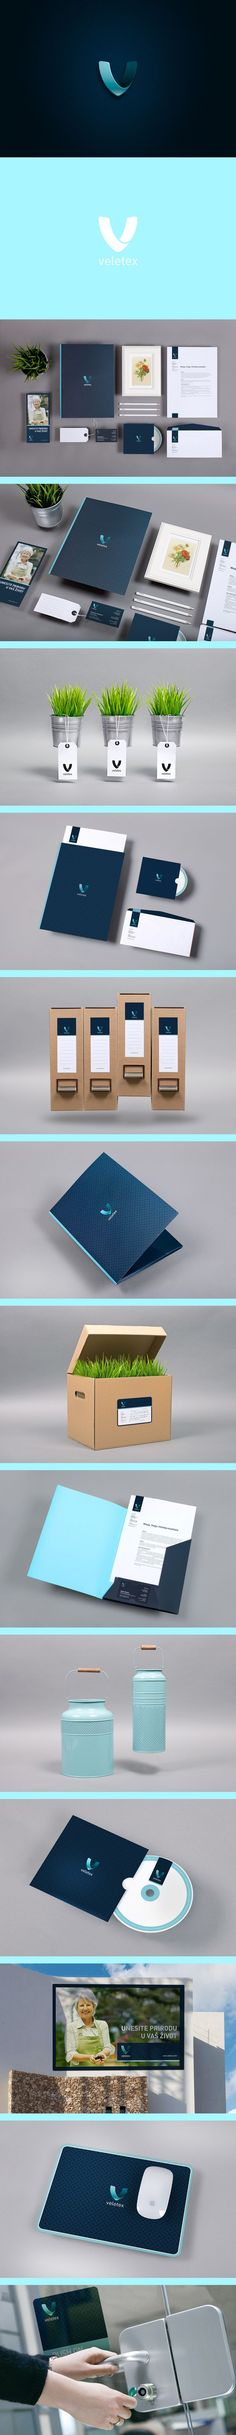 veletex | corporate branding <<< repinned by an #advertising agency from Hamburg, Germany - www.BlickeDeeler.de. The UX Blog podcast is also available on iTunes.